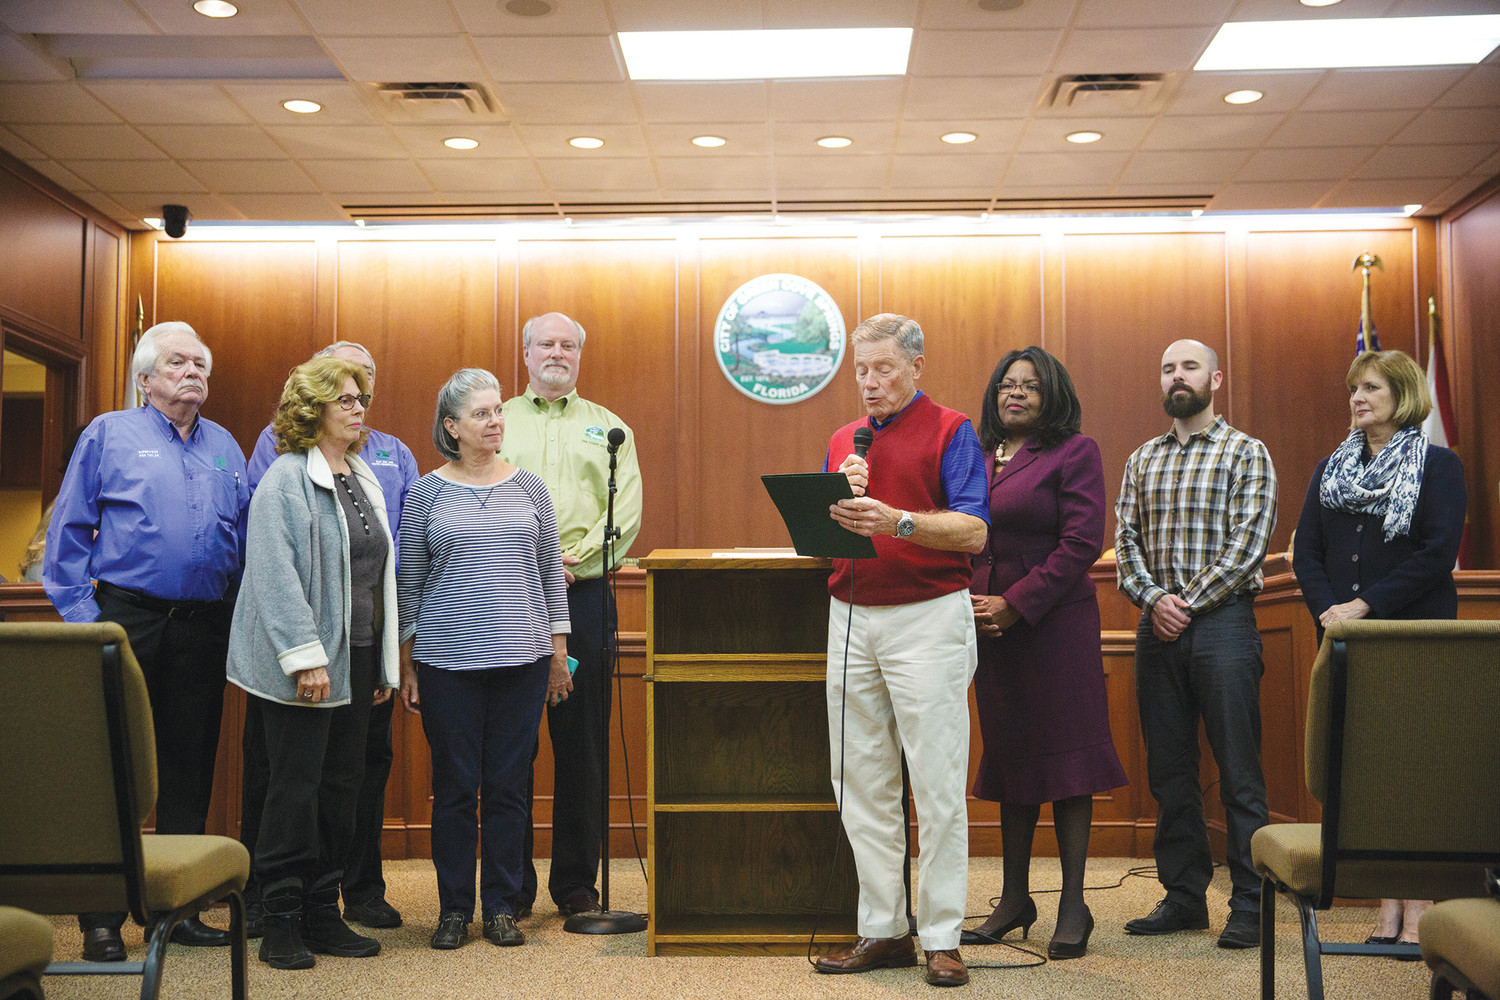 Green Cove Springs Mayor Mitch Timberlake reads a proclamation Tuesday evening at the council's regularly scheduled meeting recognizing Arbor Day as being held statewide on the third Friday in January. The city has been an official Tree City USA Community for almost 30 years.